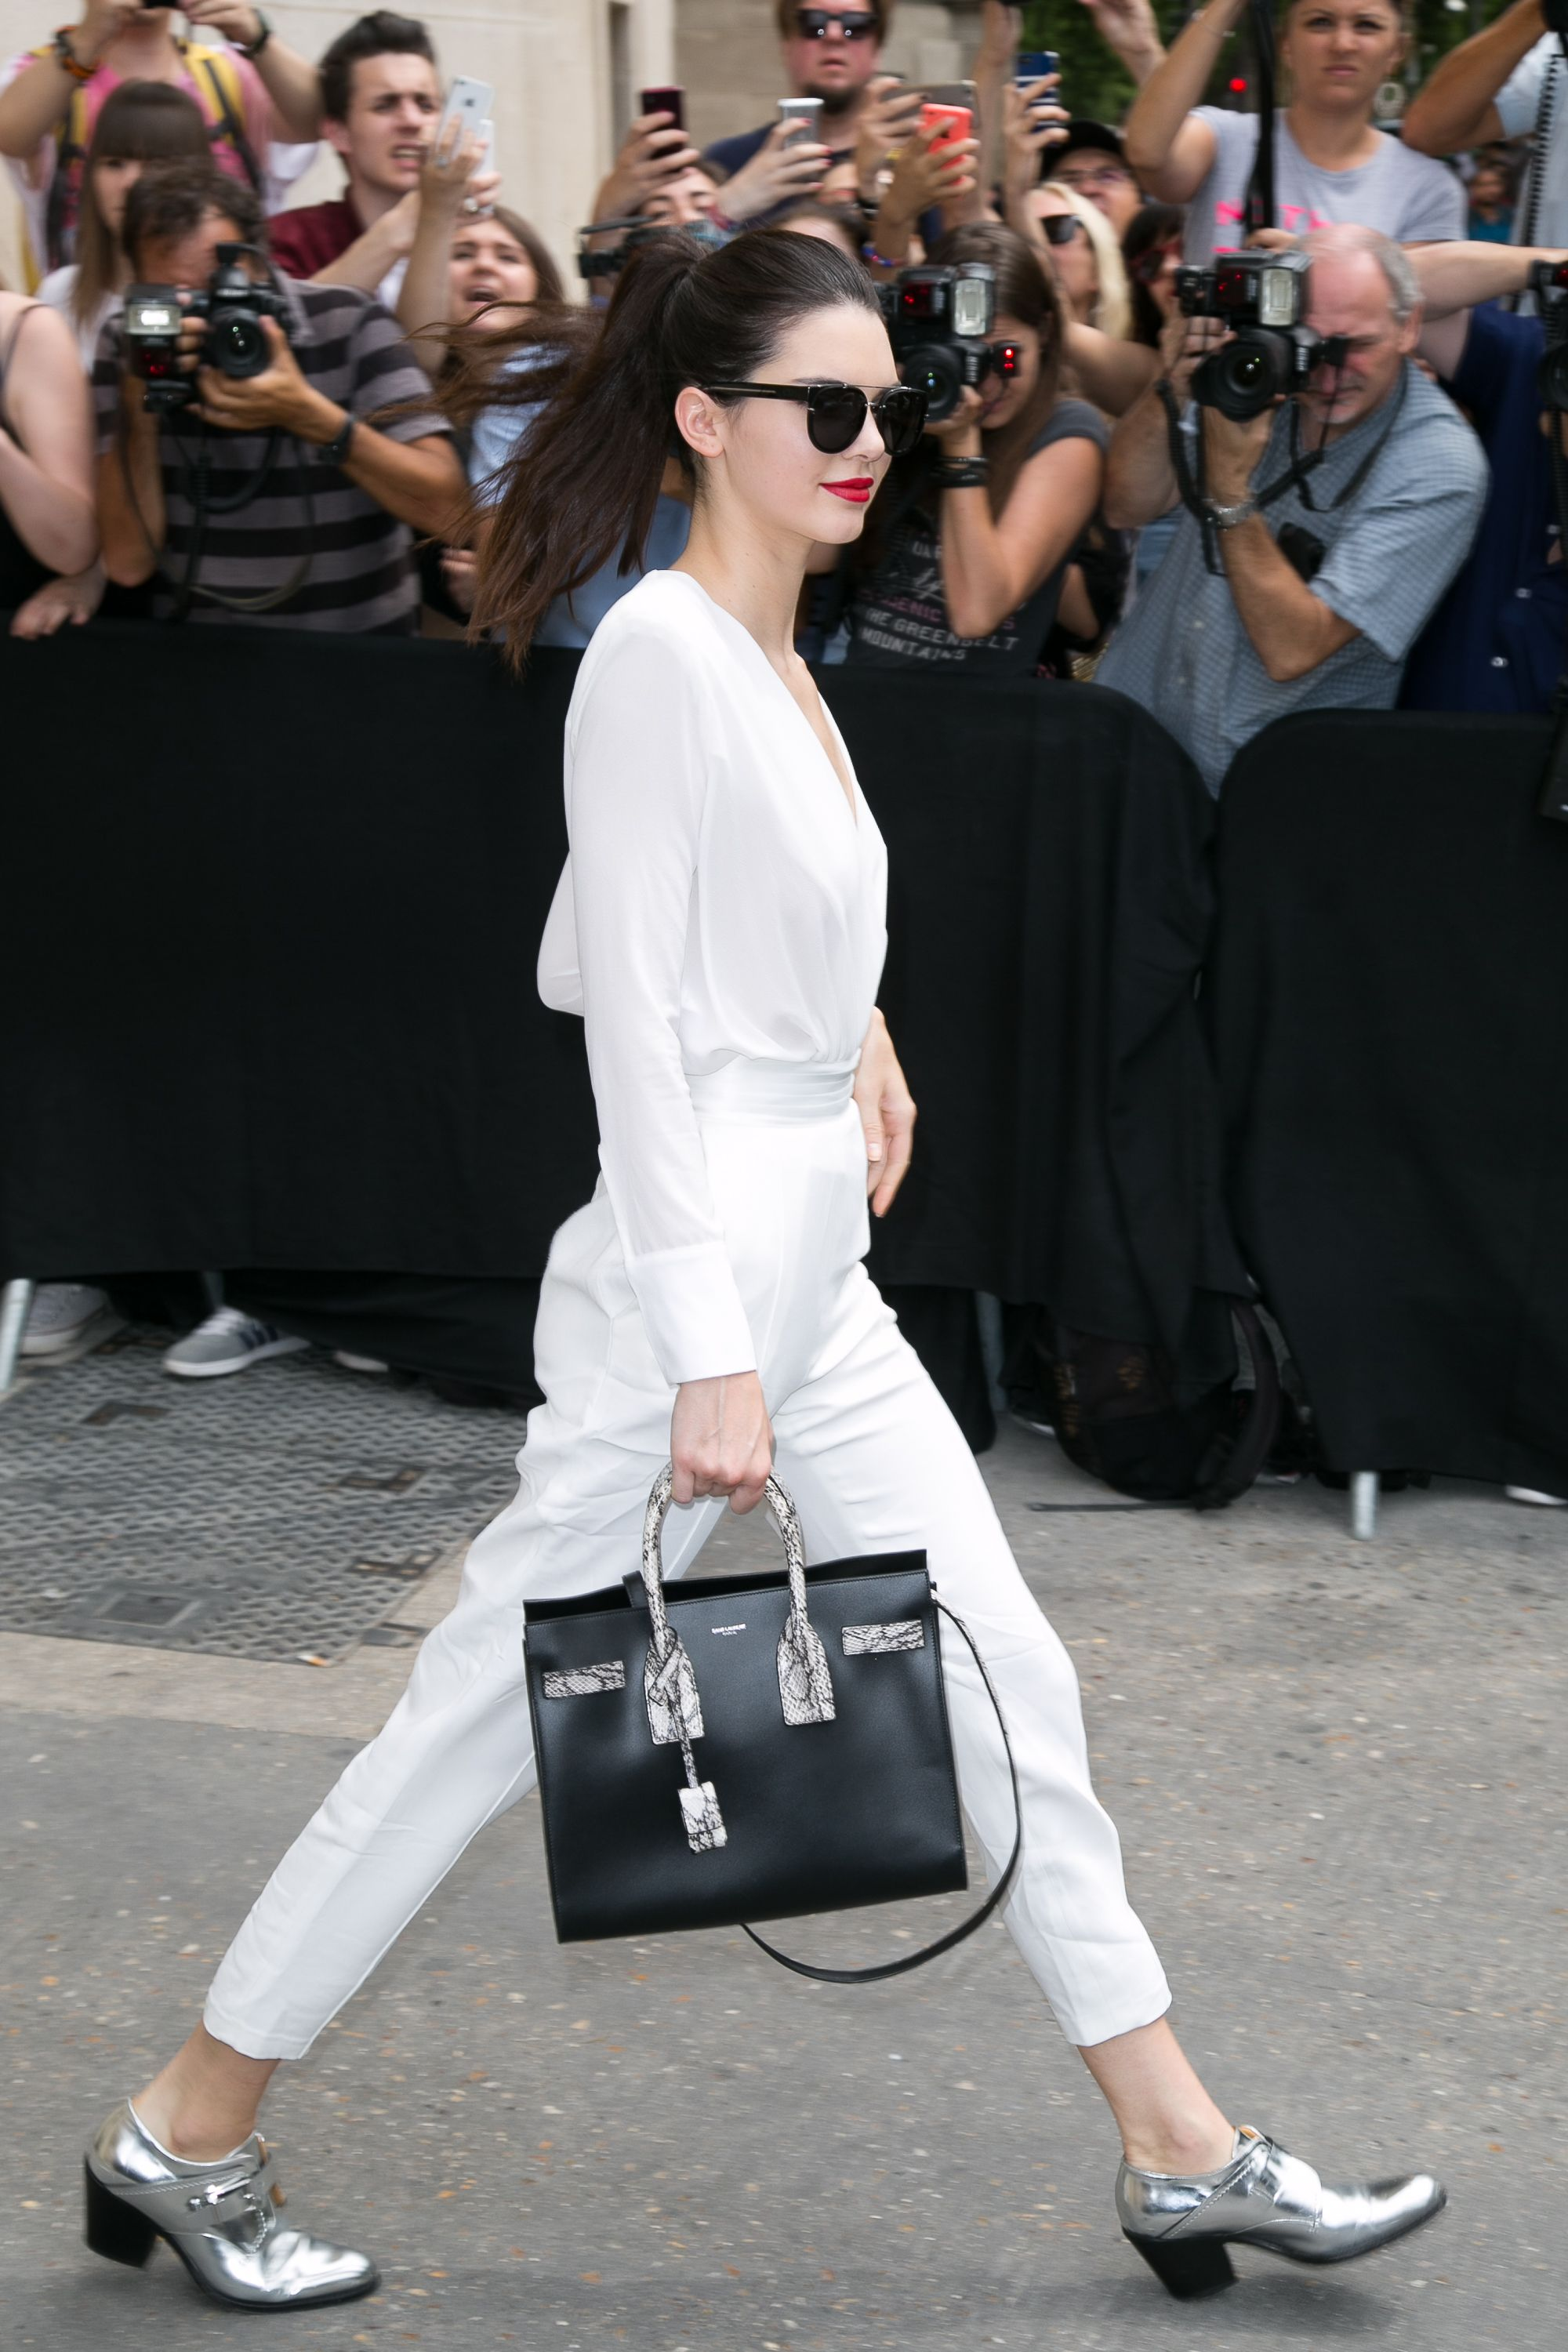 "<p>Kendall Jenner is beloved for her polished take on off-duty style, and you're just as likely to spot her in a sleek jumpsuit as jeans and a t-shirt. </p><p><strong data-redactor-tag=""strong"">Go-to look: </strong>Jeans, booties, and a comfortable t-shirt.</p><p><strong data-redactor-tag=""strong"">Her style in two words:</strong> "" Comfortably tailored.""</p><p><br></p>"